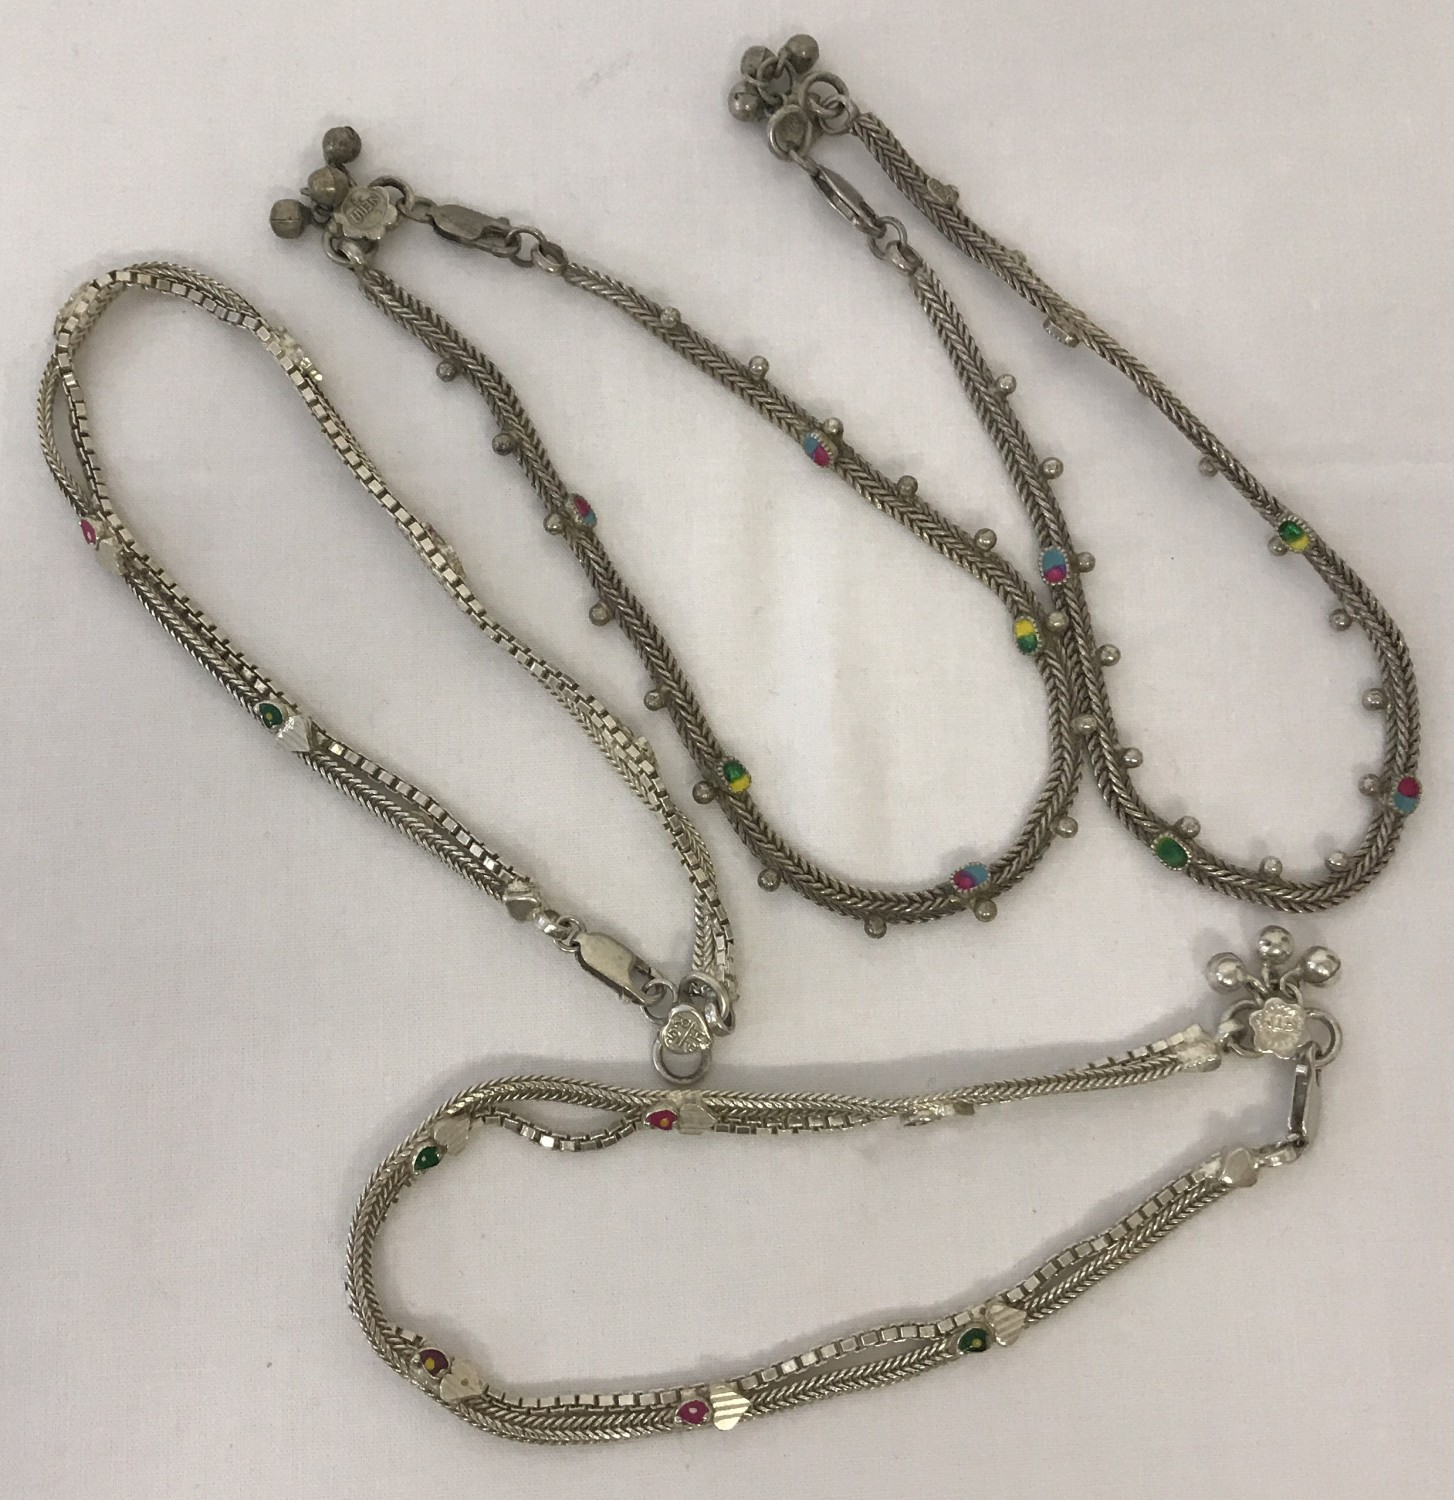 Lot 12 - 4 Indian white metal decorative ankle chains.